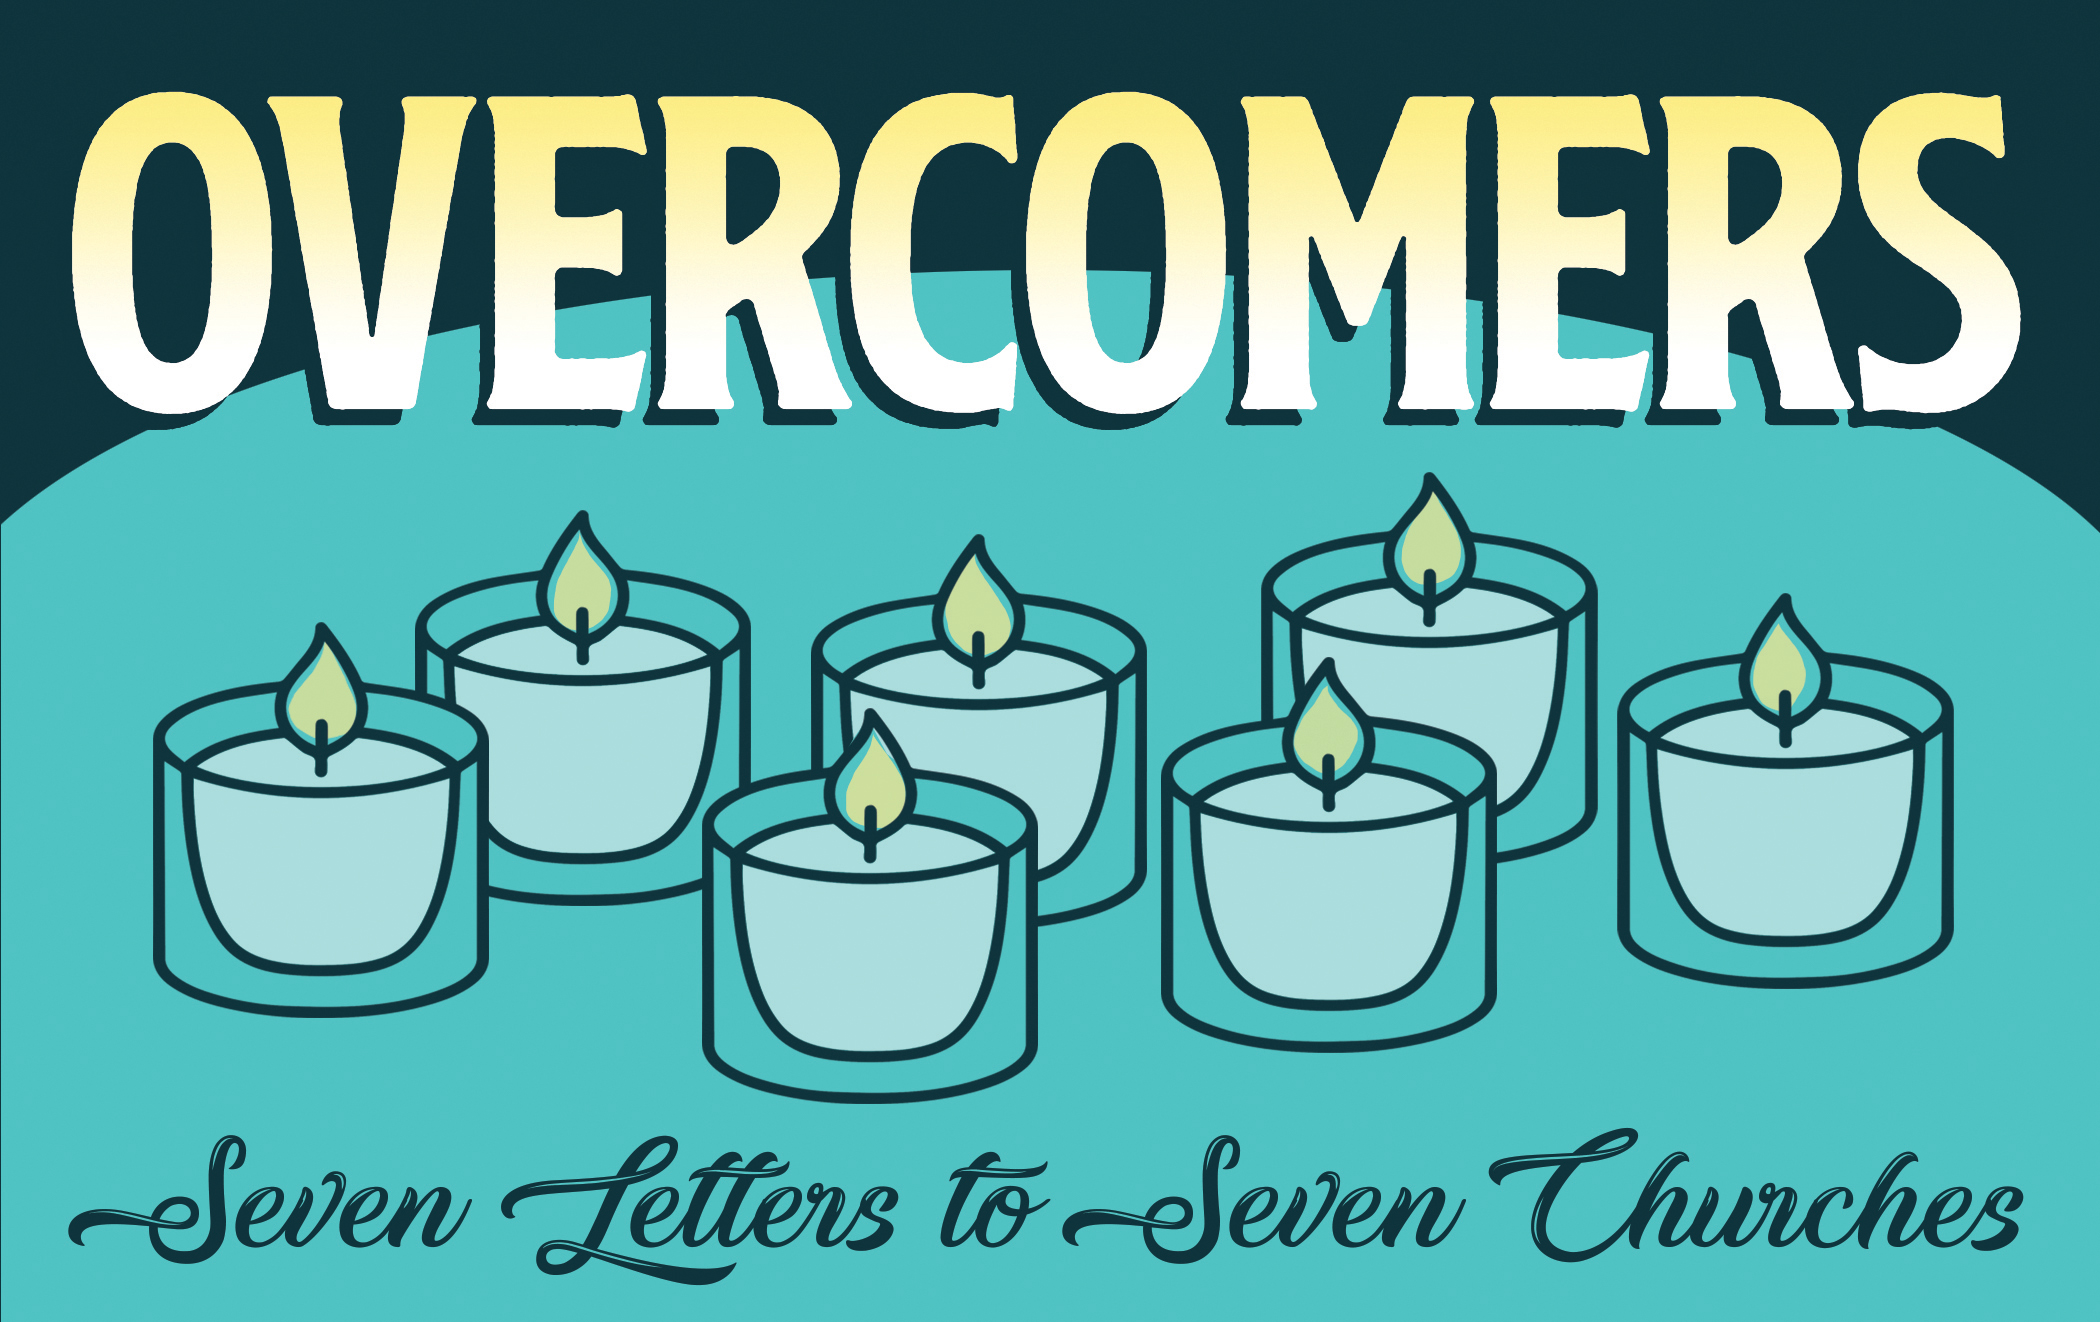 Overcomers: 7 Letters to 7 Churches